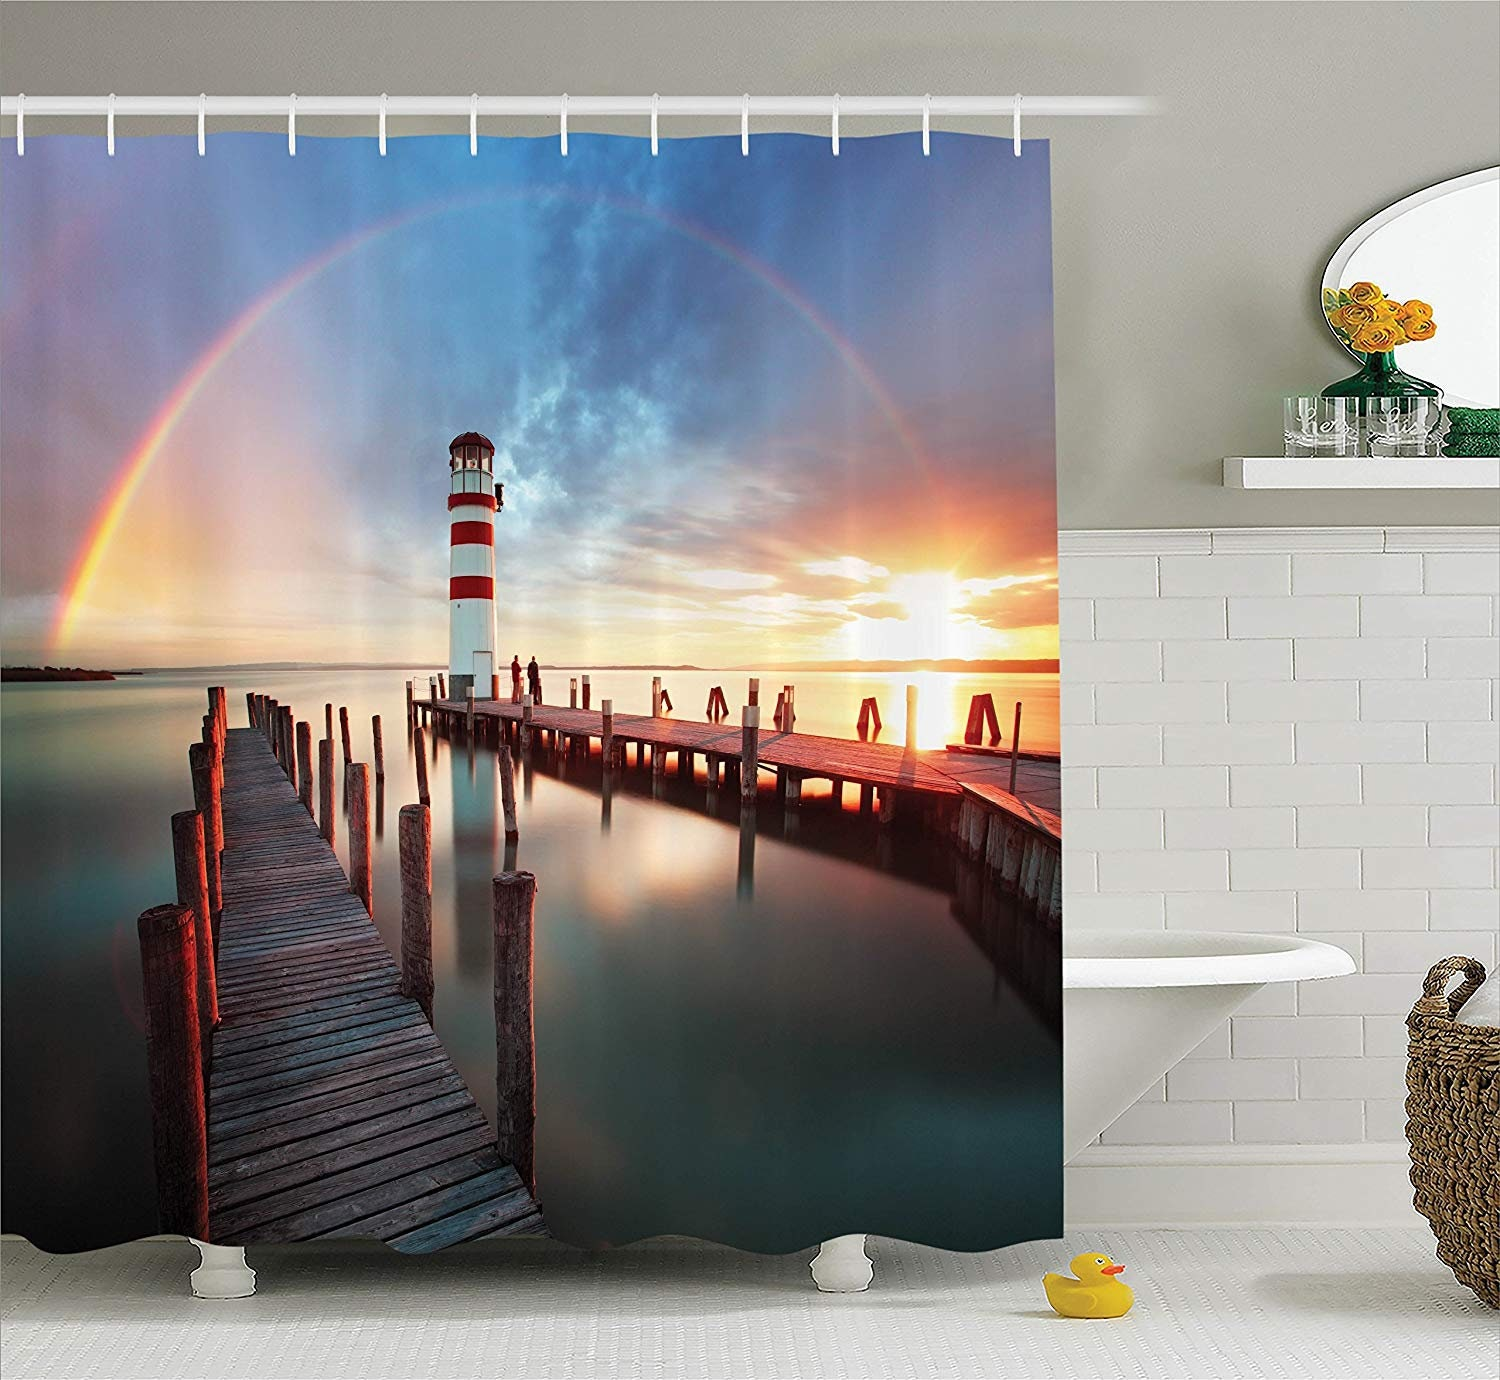 Lighthouse Decor Shower Curtain Set Sunset At Seaside With Wooden Docks Lighthouse Clouds Rainbow Waterfront Reflection Bathroom Accessories